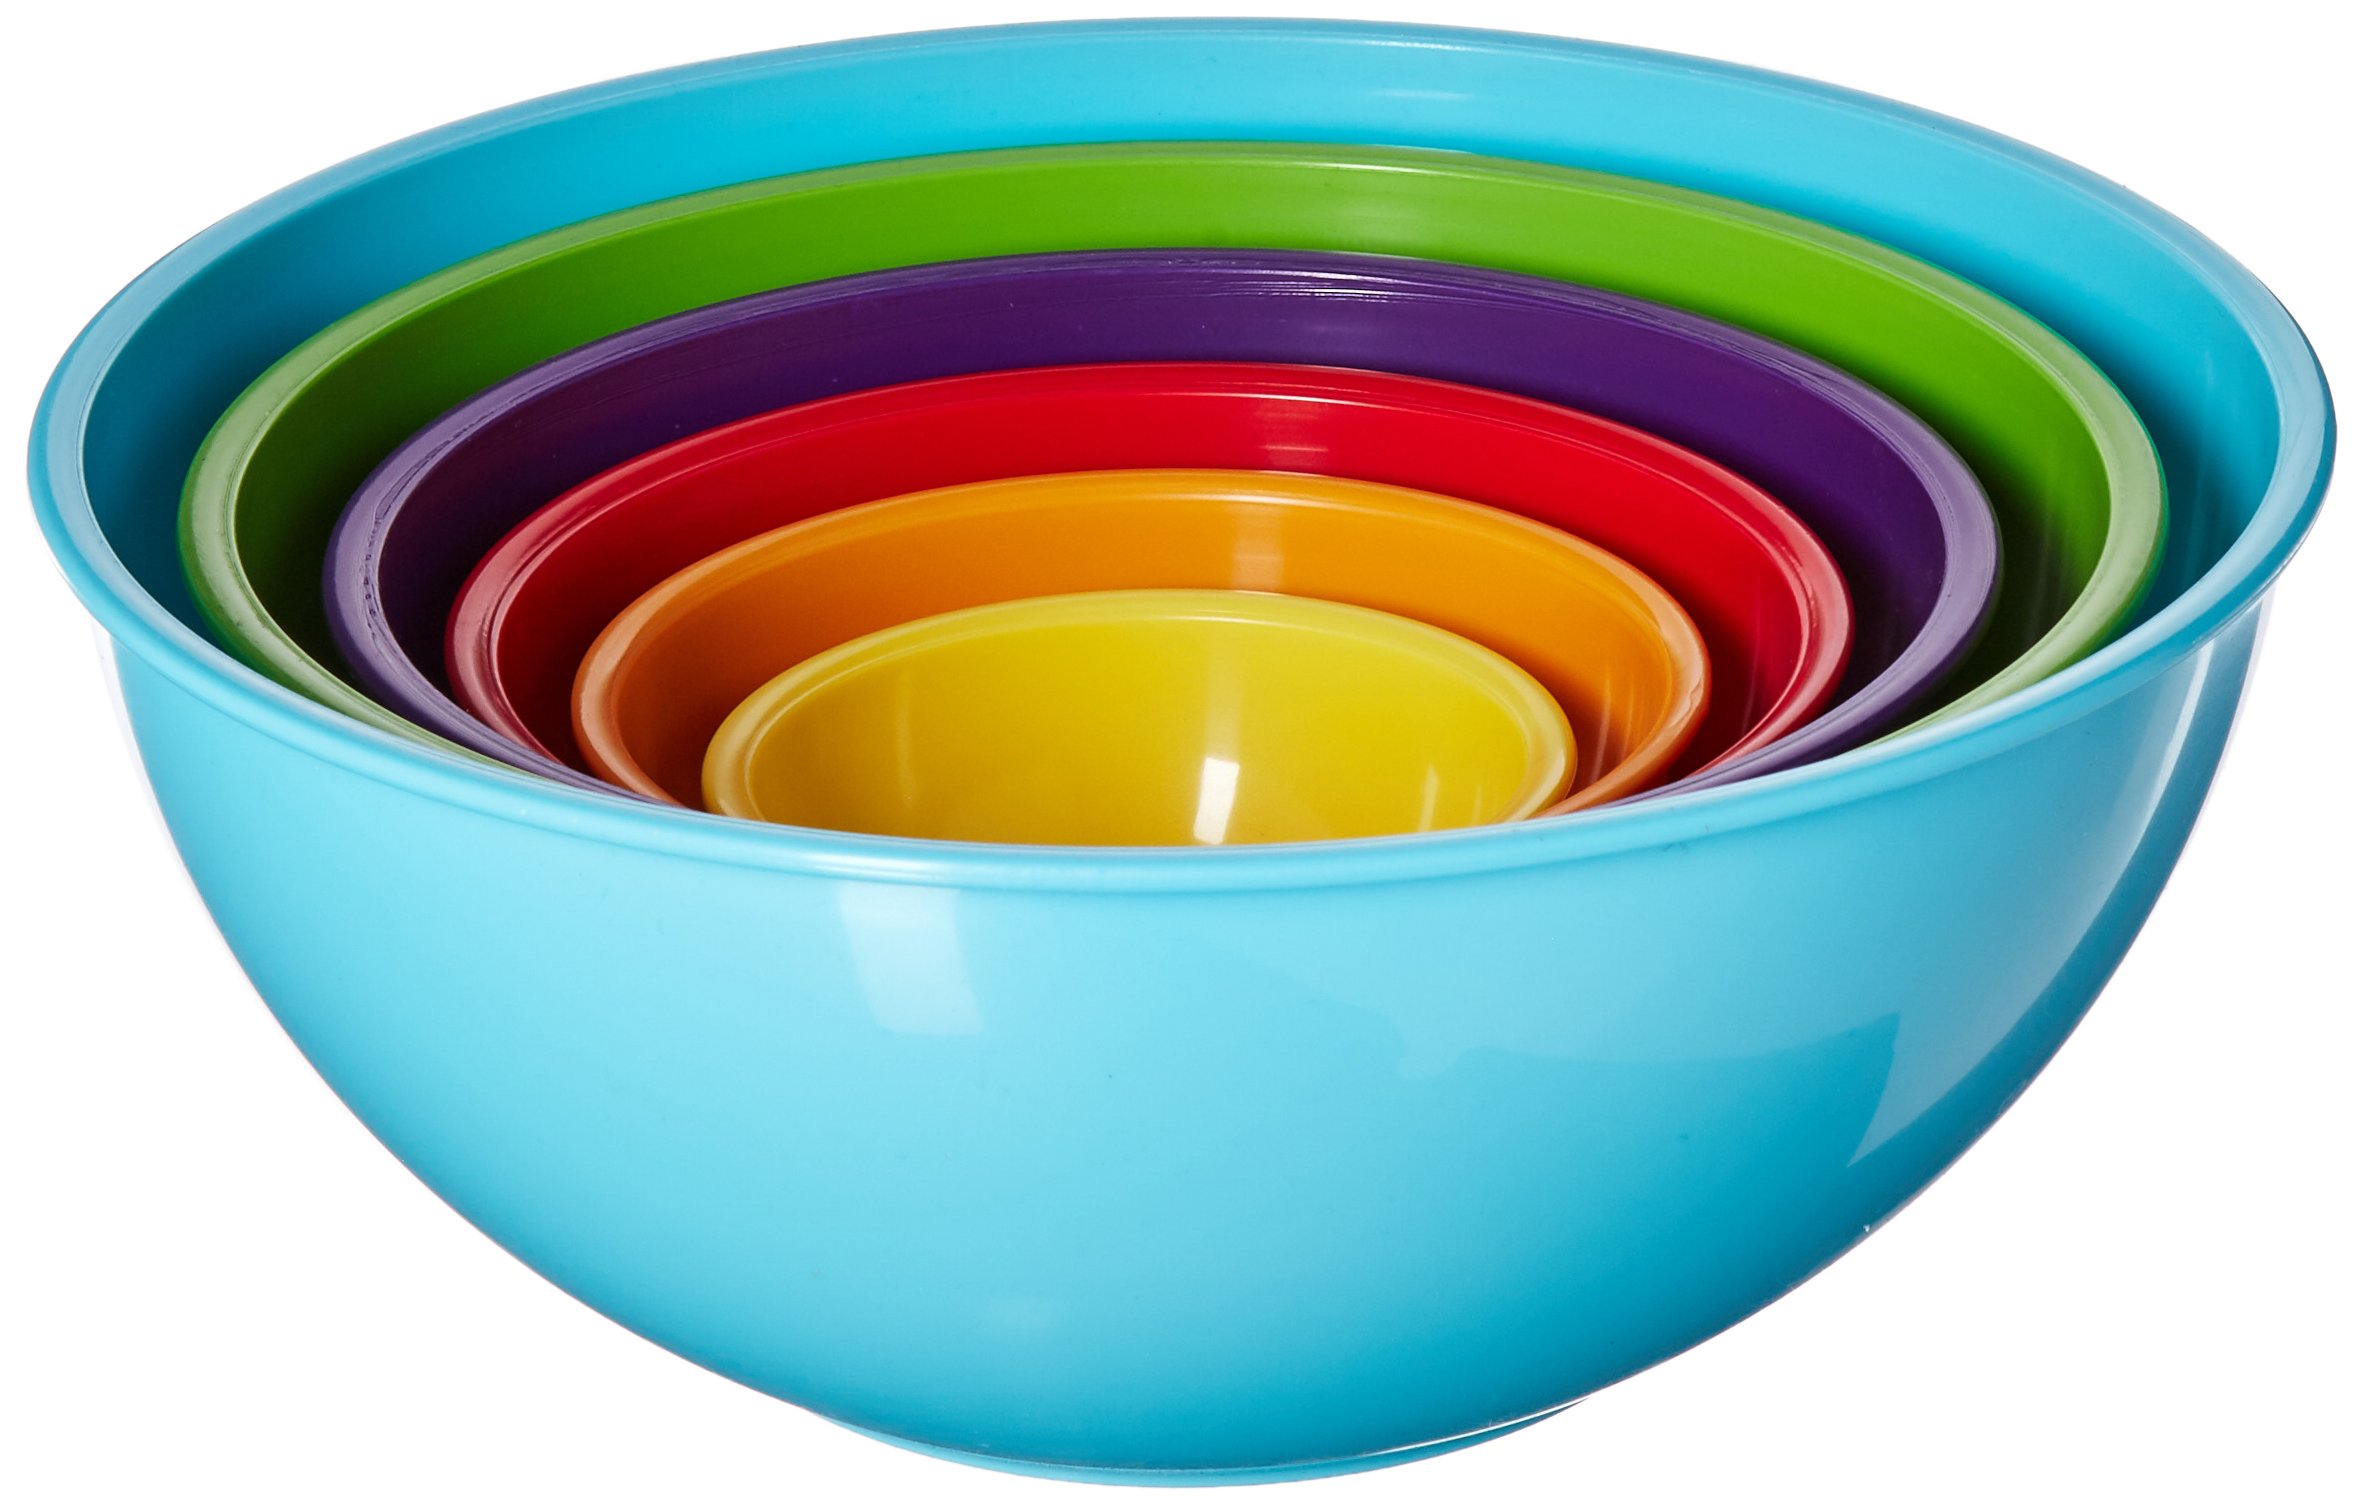 Gourmet Home Products 6 Piece Nested Polypropylene Mixing Bowl Set, Light Blue (138410)